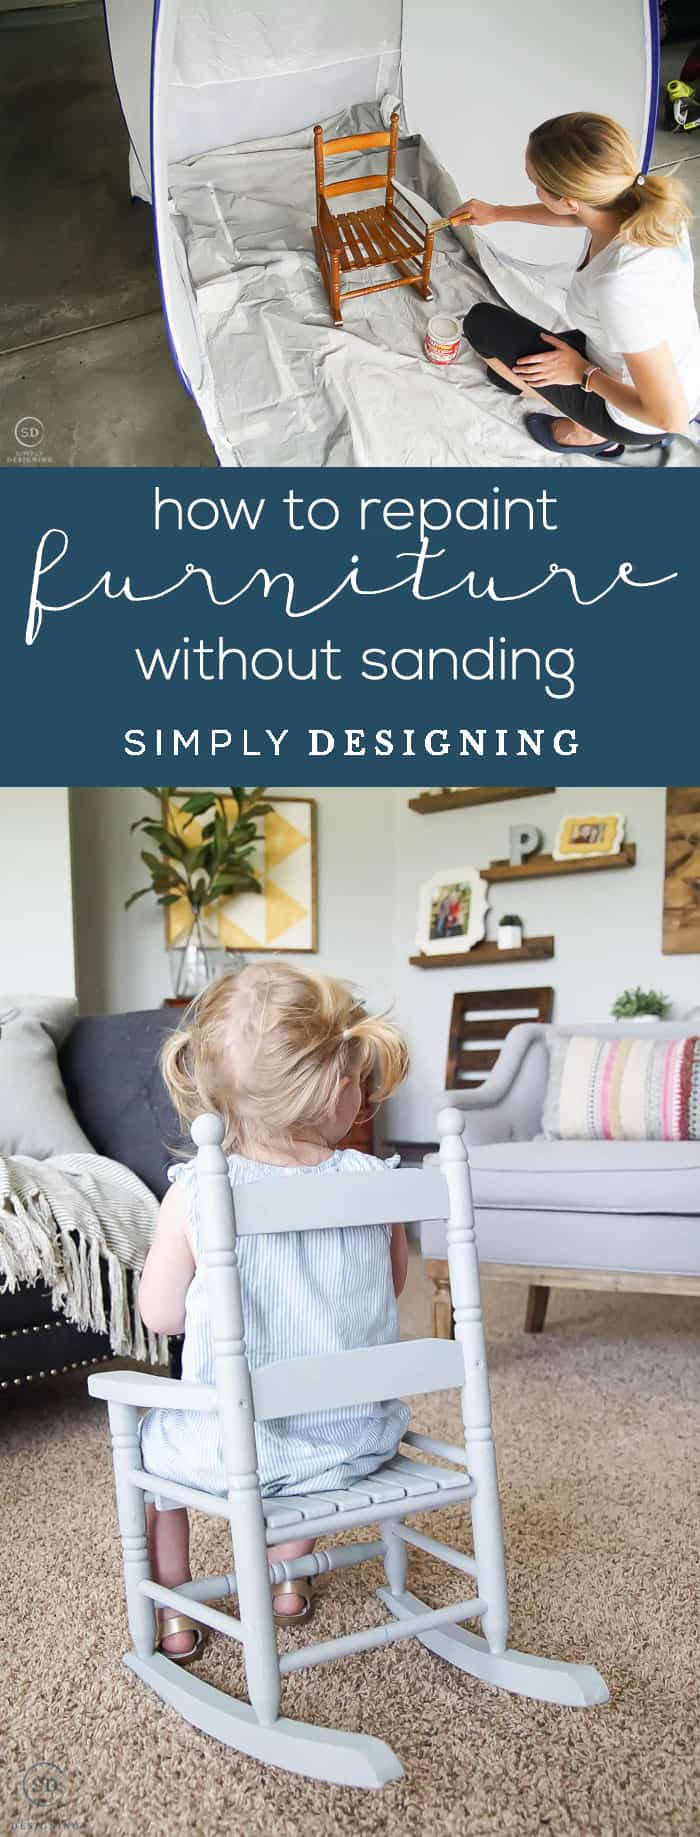 How to Repaint Furniture without Sanding - an easy way to refinish furniture